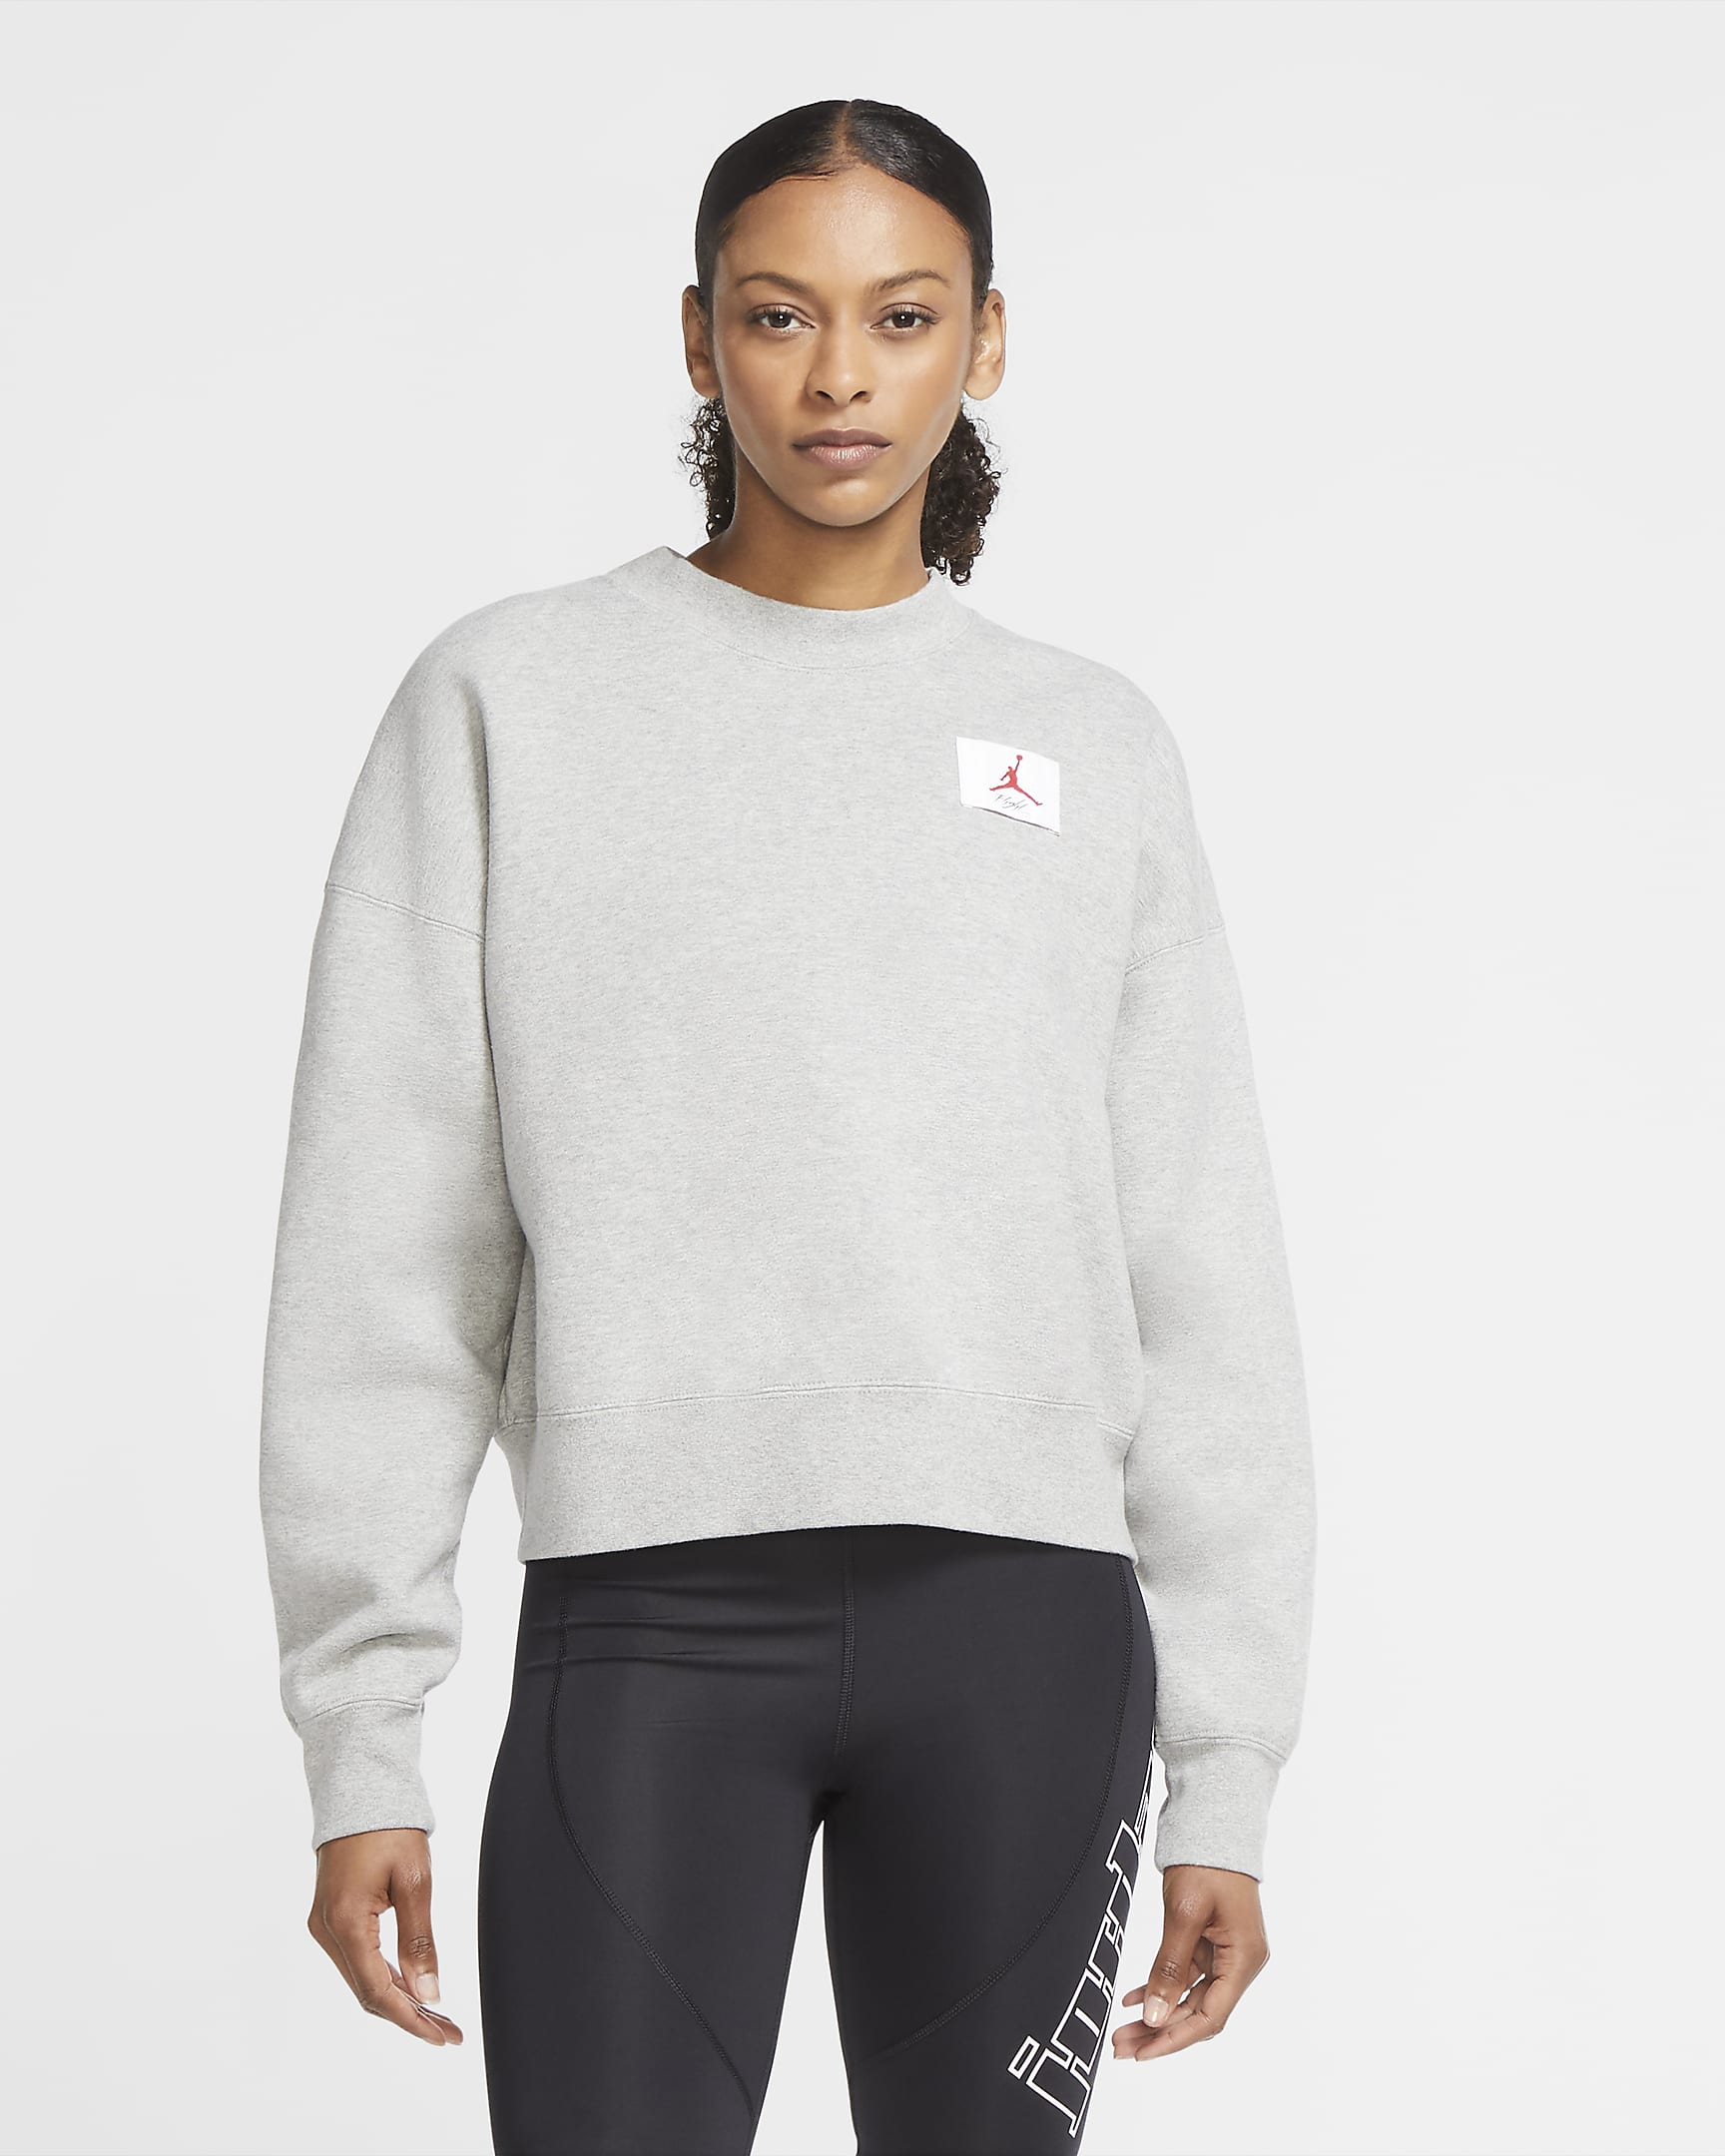 jordan-flight-womens-fleece-top-8xxF74